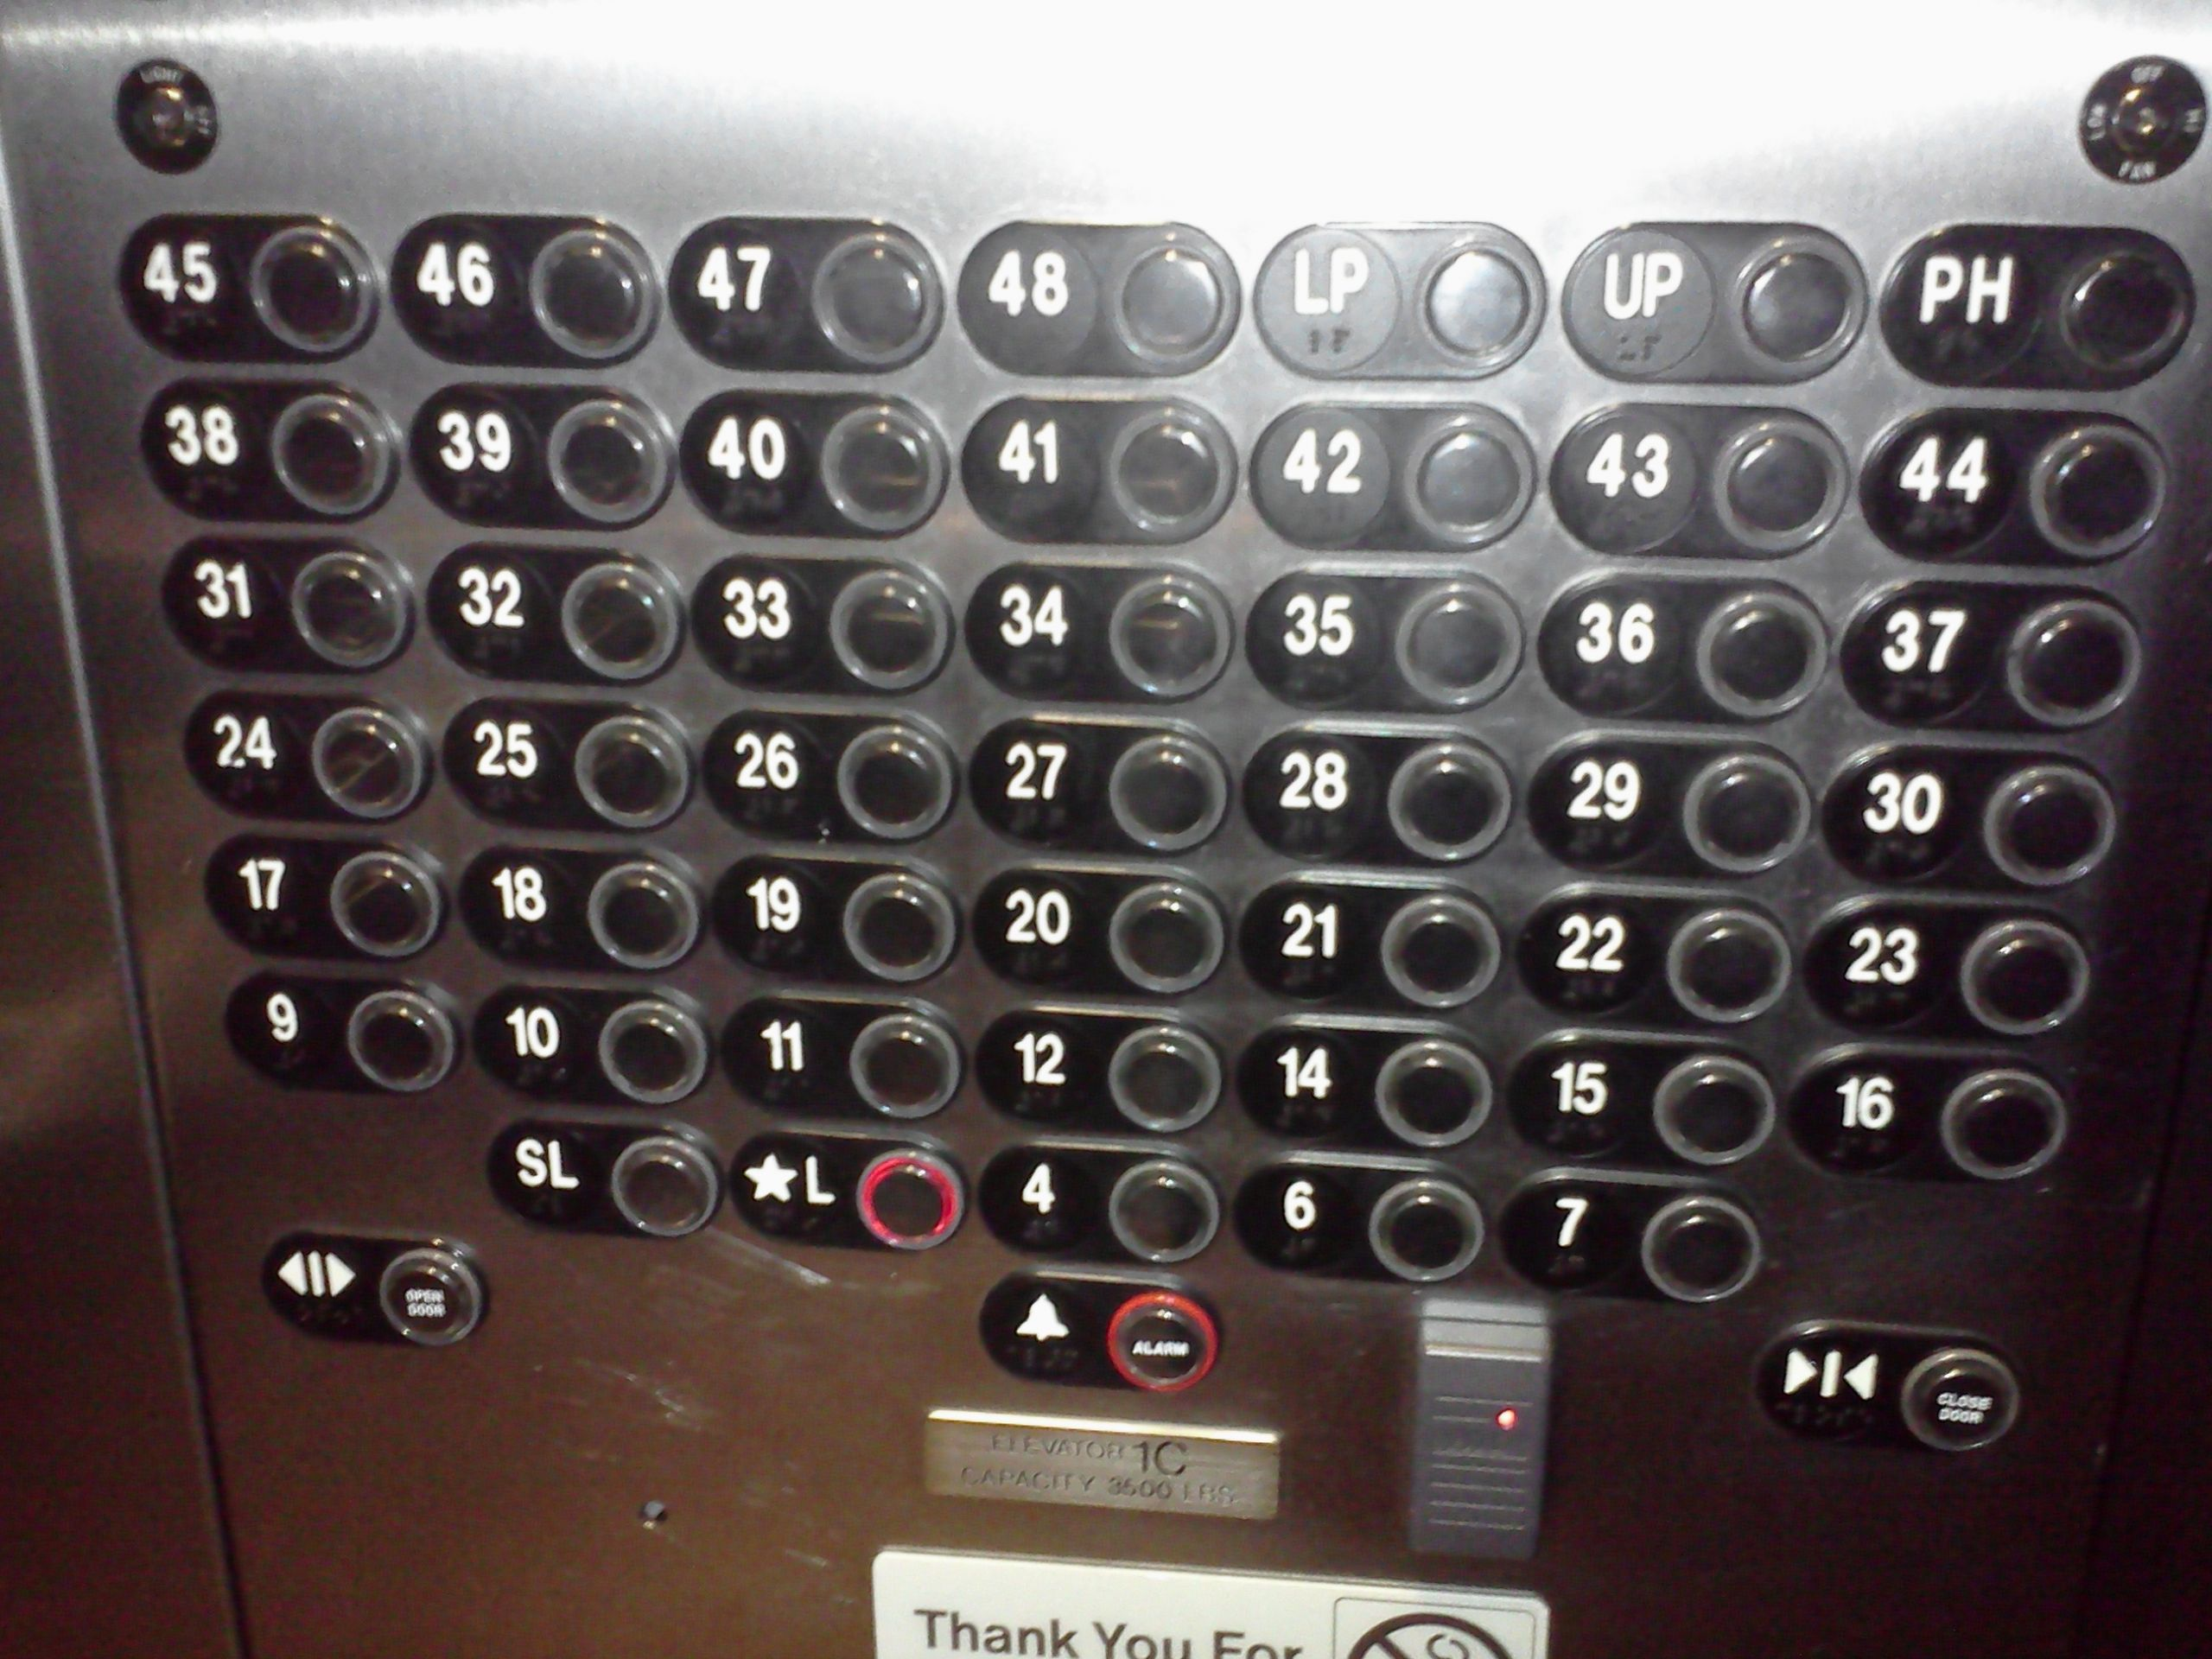 An Elevator Control Panel For 30 Floor Buildings